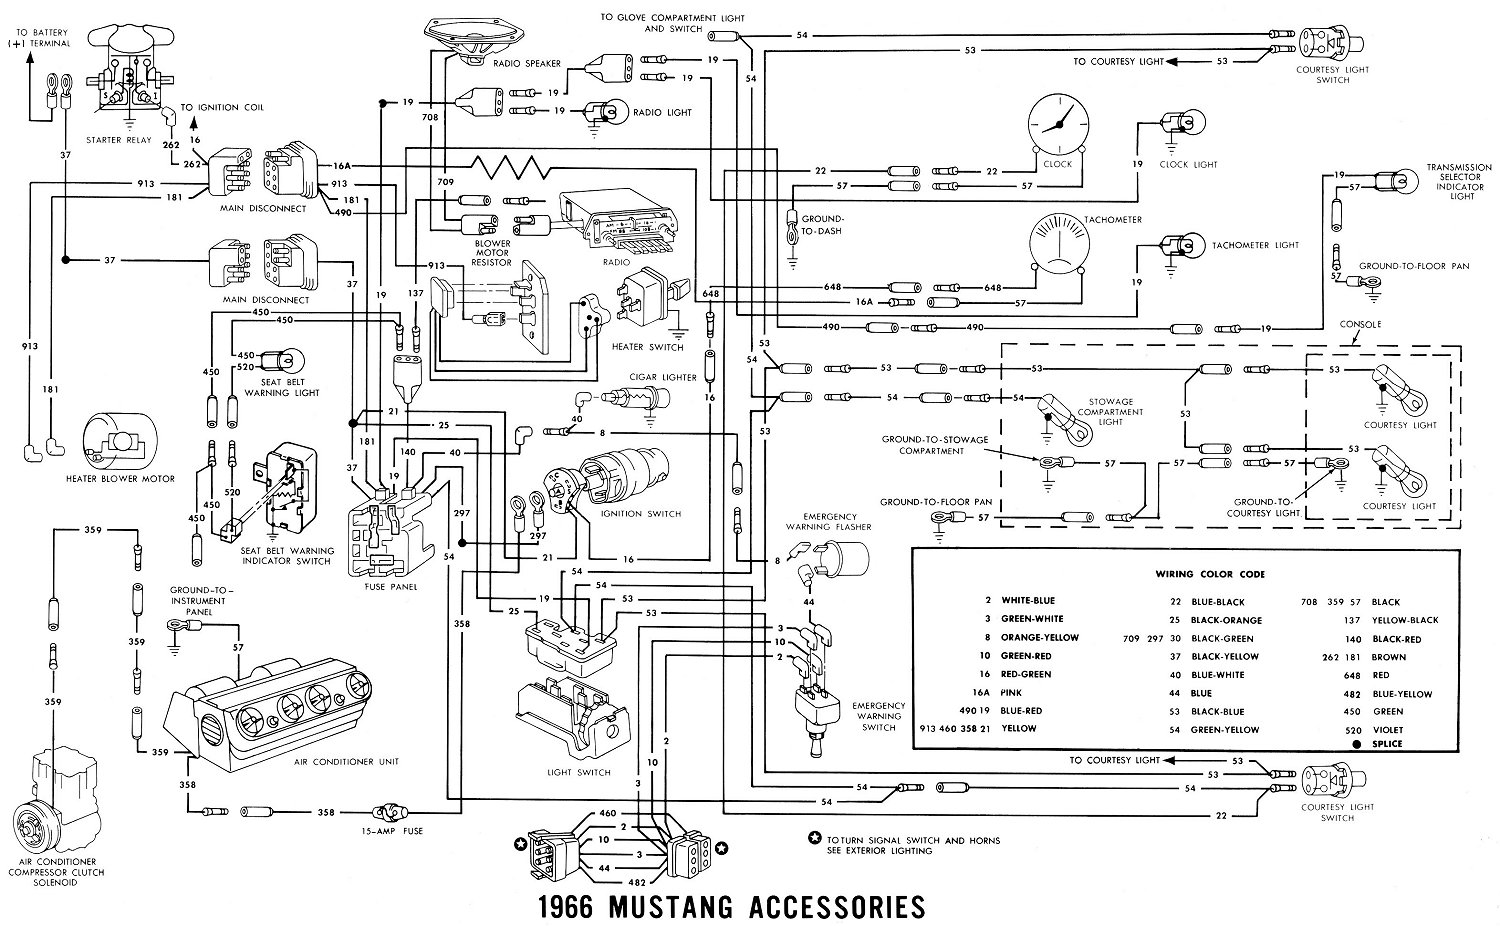 1966 Mustang Wiring Diagrams - Average Joe RestorationAverage Joe Restoration